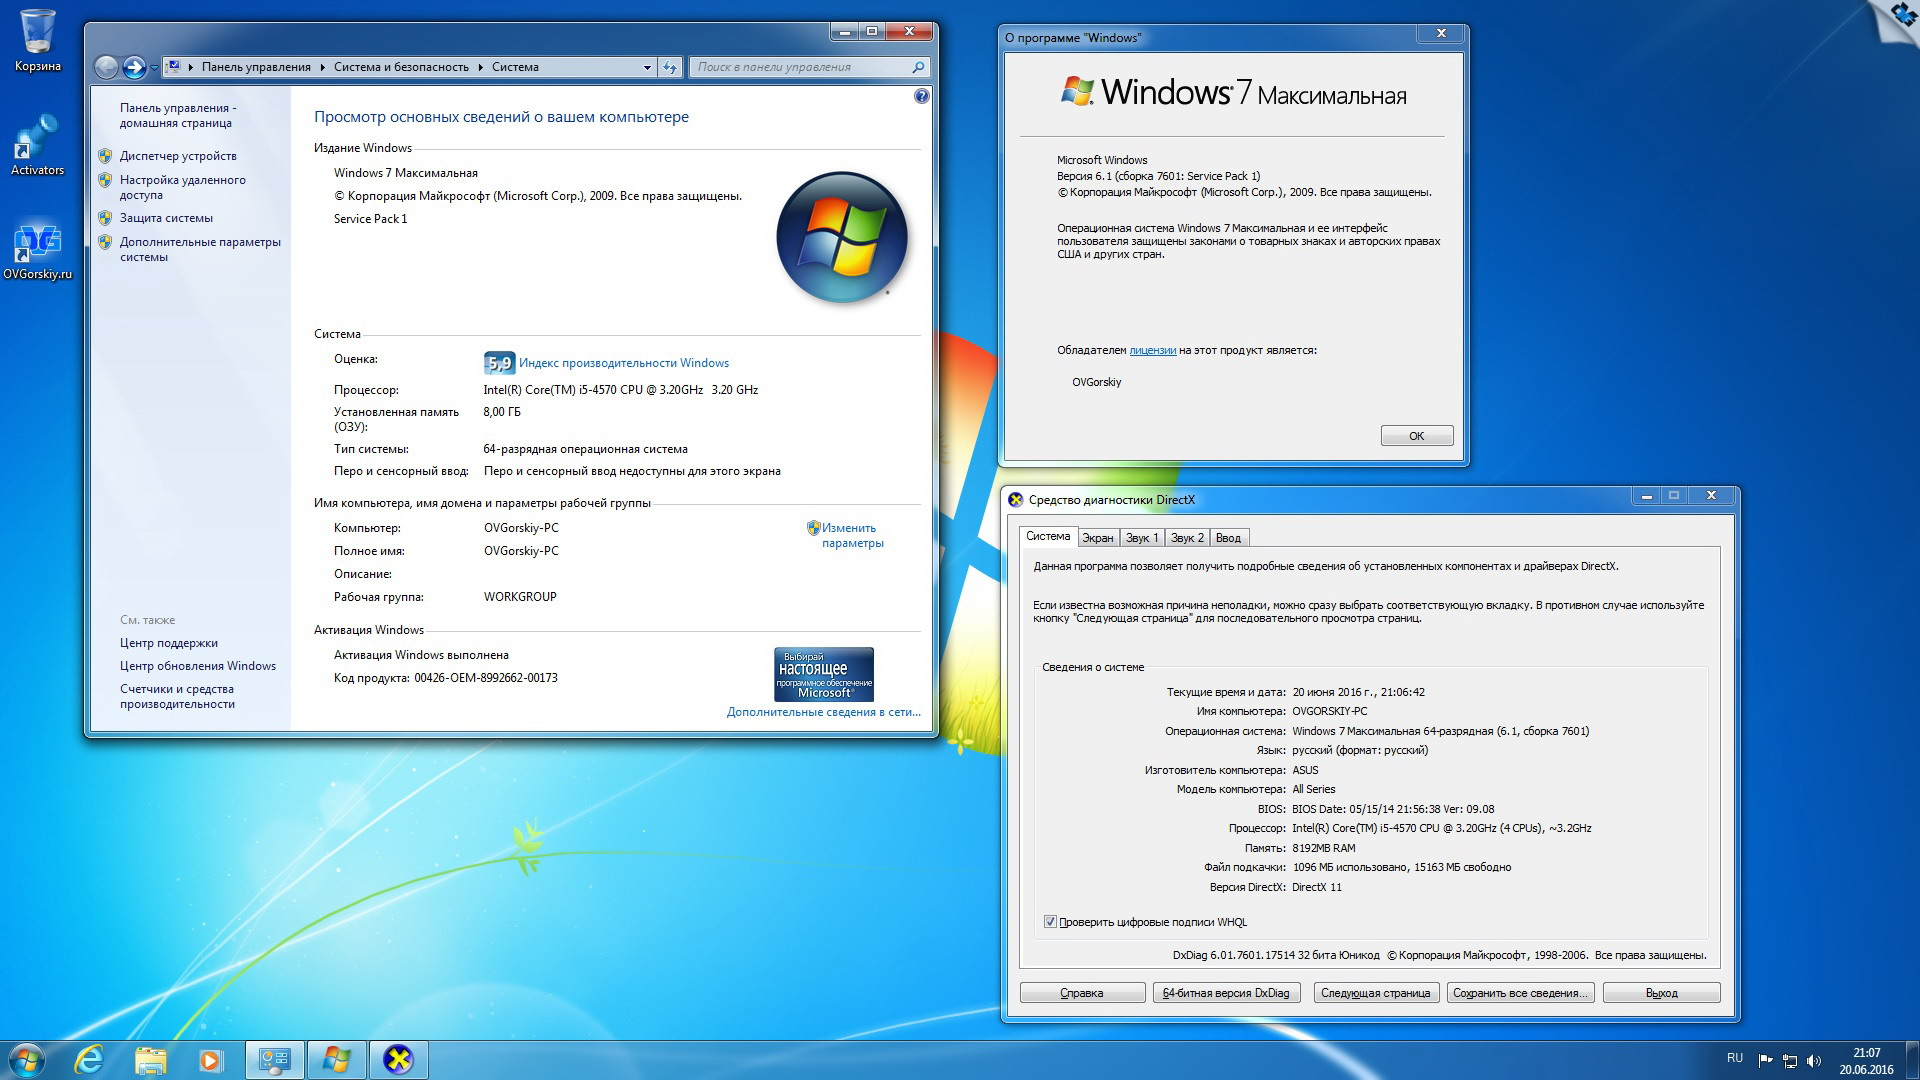 Windows 7 ������������ Ru x86-x64 Orig w. BootMenu by OVGorskiy� 06.2016